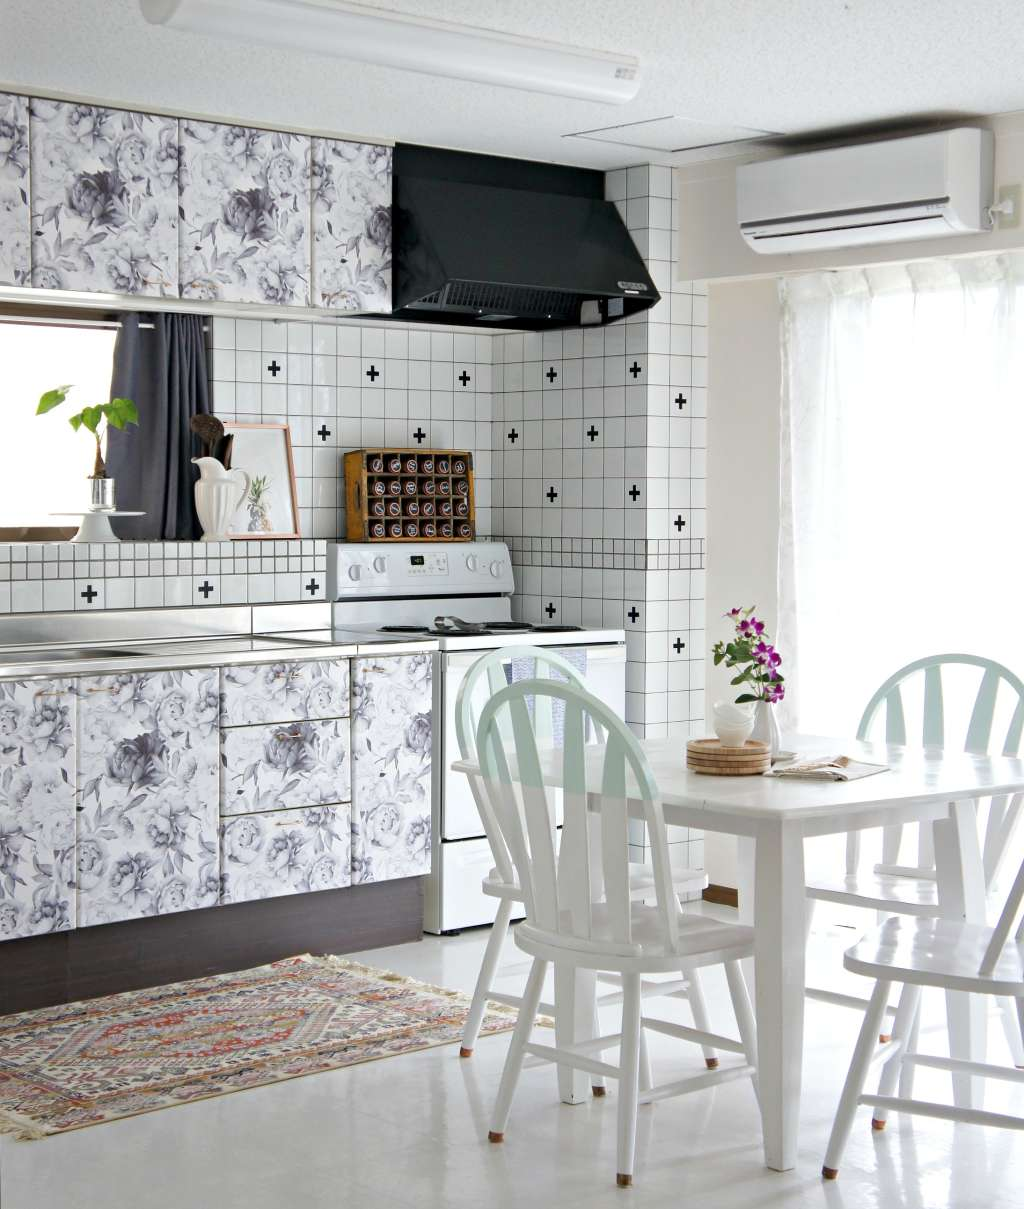 Kitchen For Rent: Temporary Wall Pattern Ideas For Renters